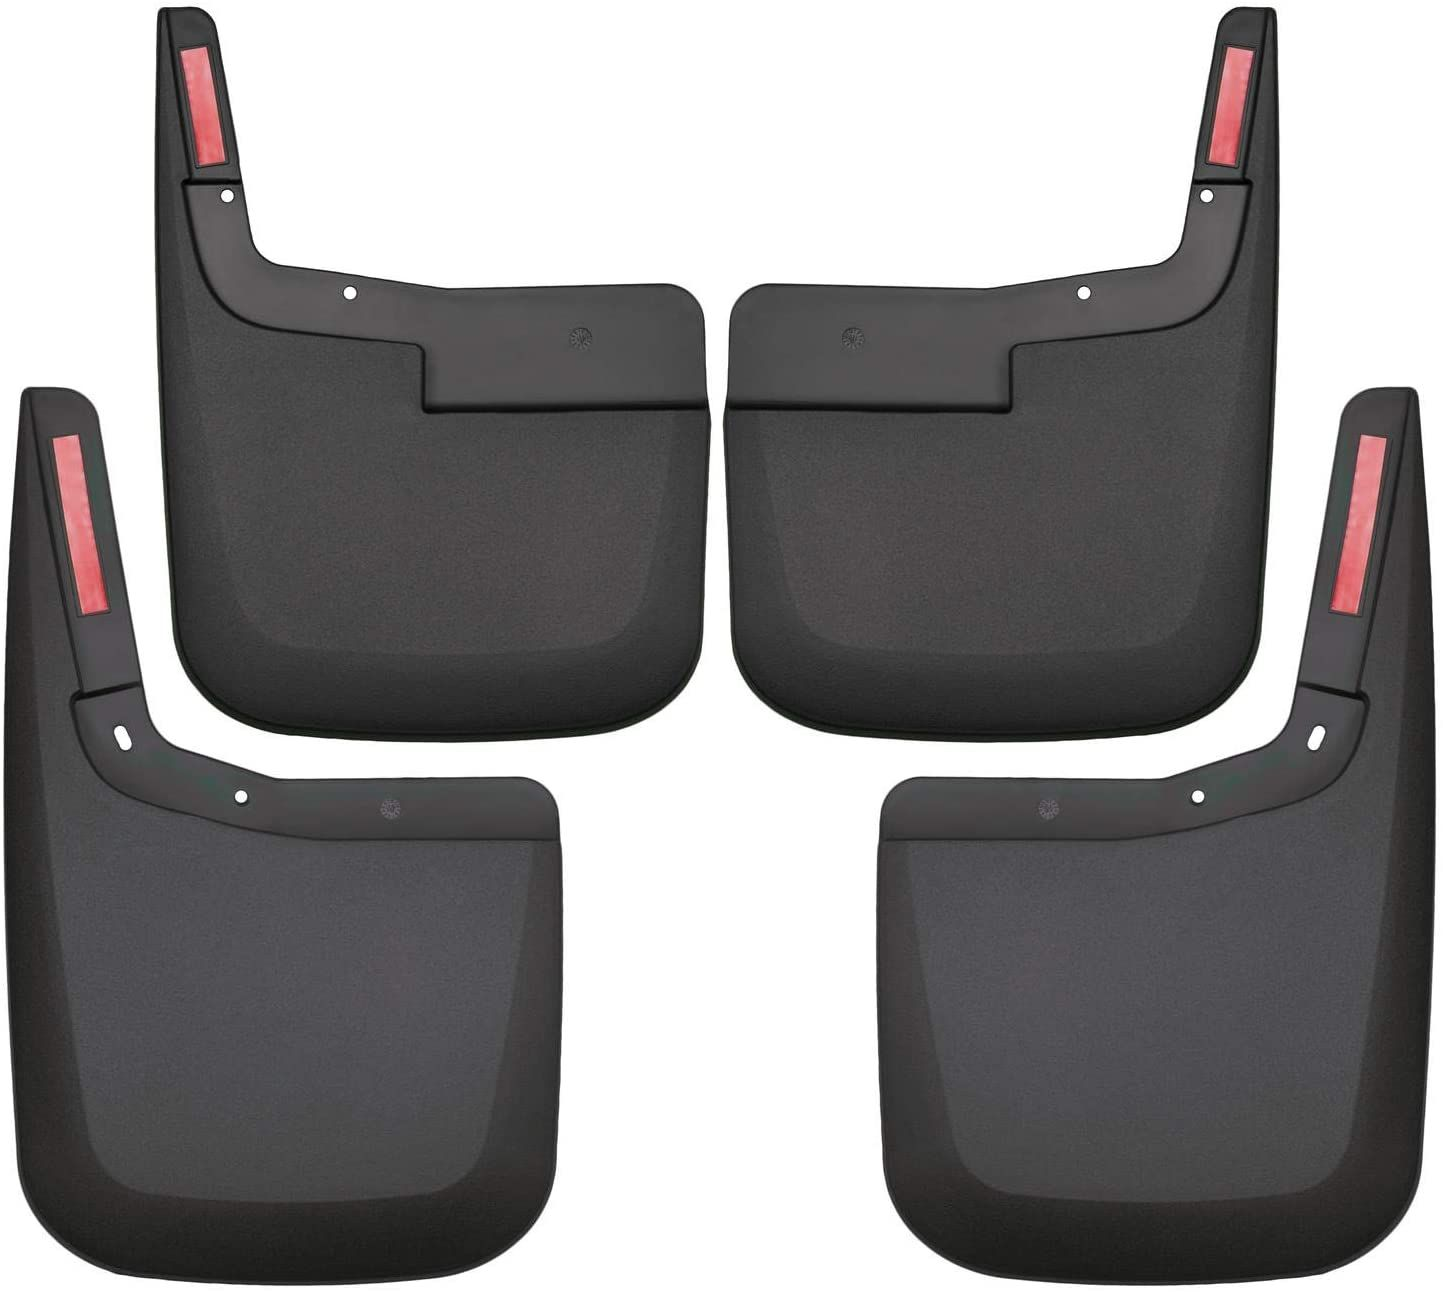 Pin On Ford F 150 Accessories For 2020 Or Older Models